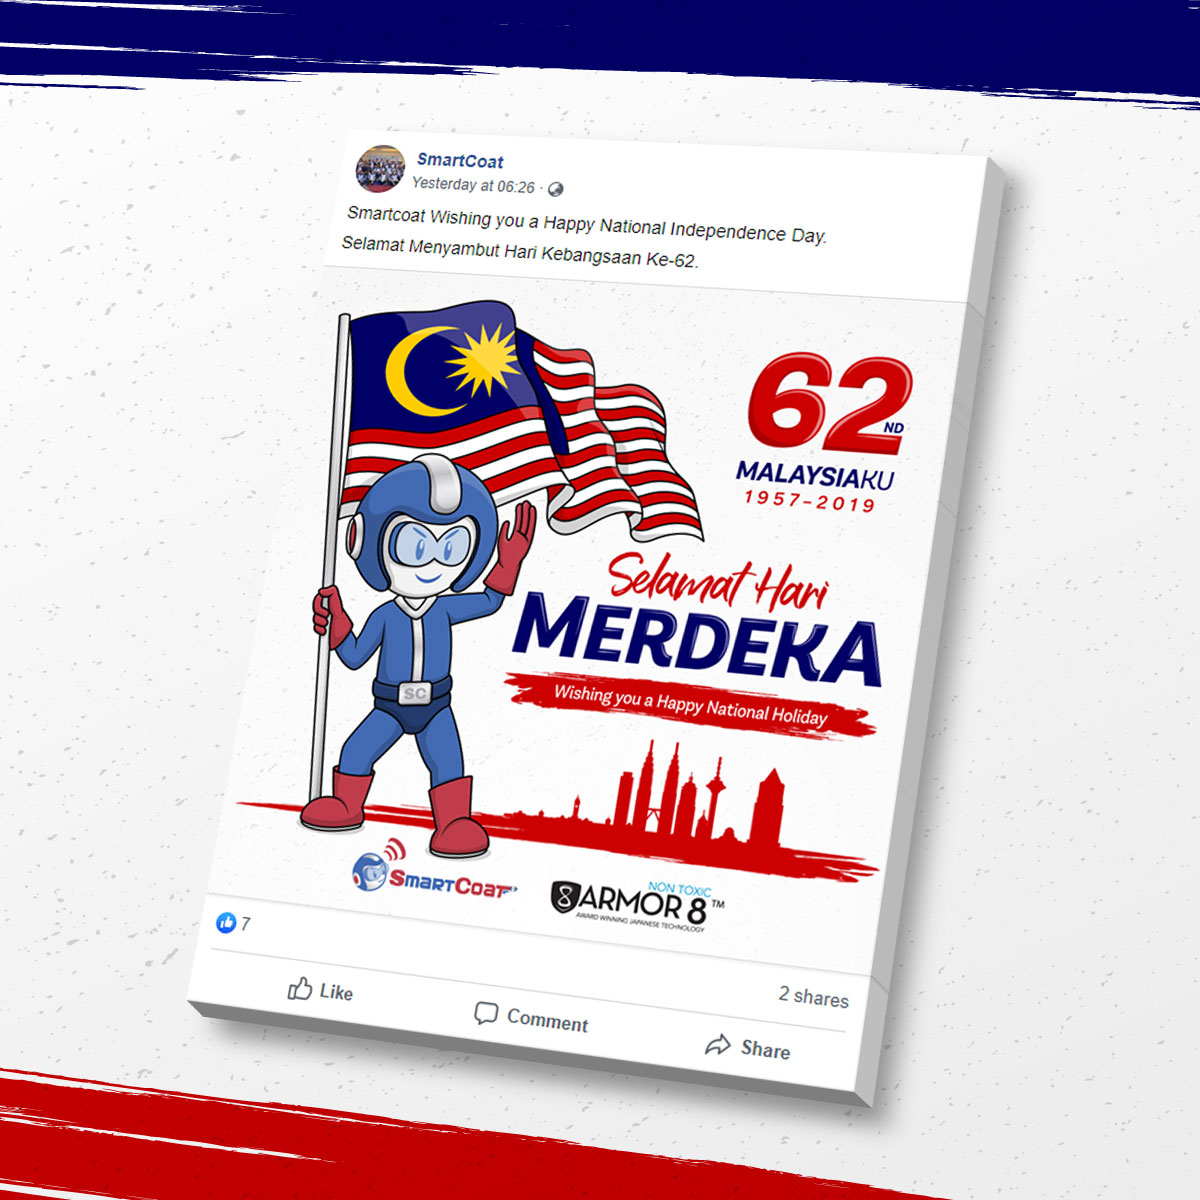 SmartCoat and Armor8 Selamat Hari Merdeka 2019 Facebook Post Design 03